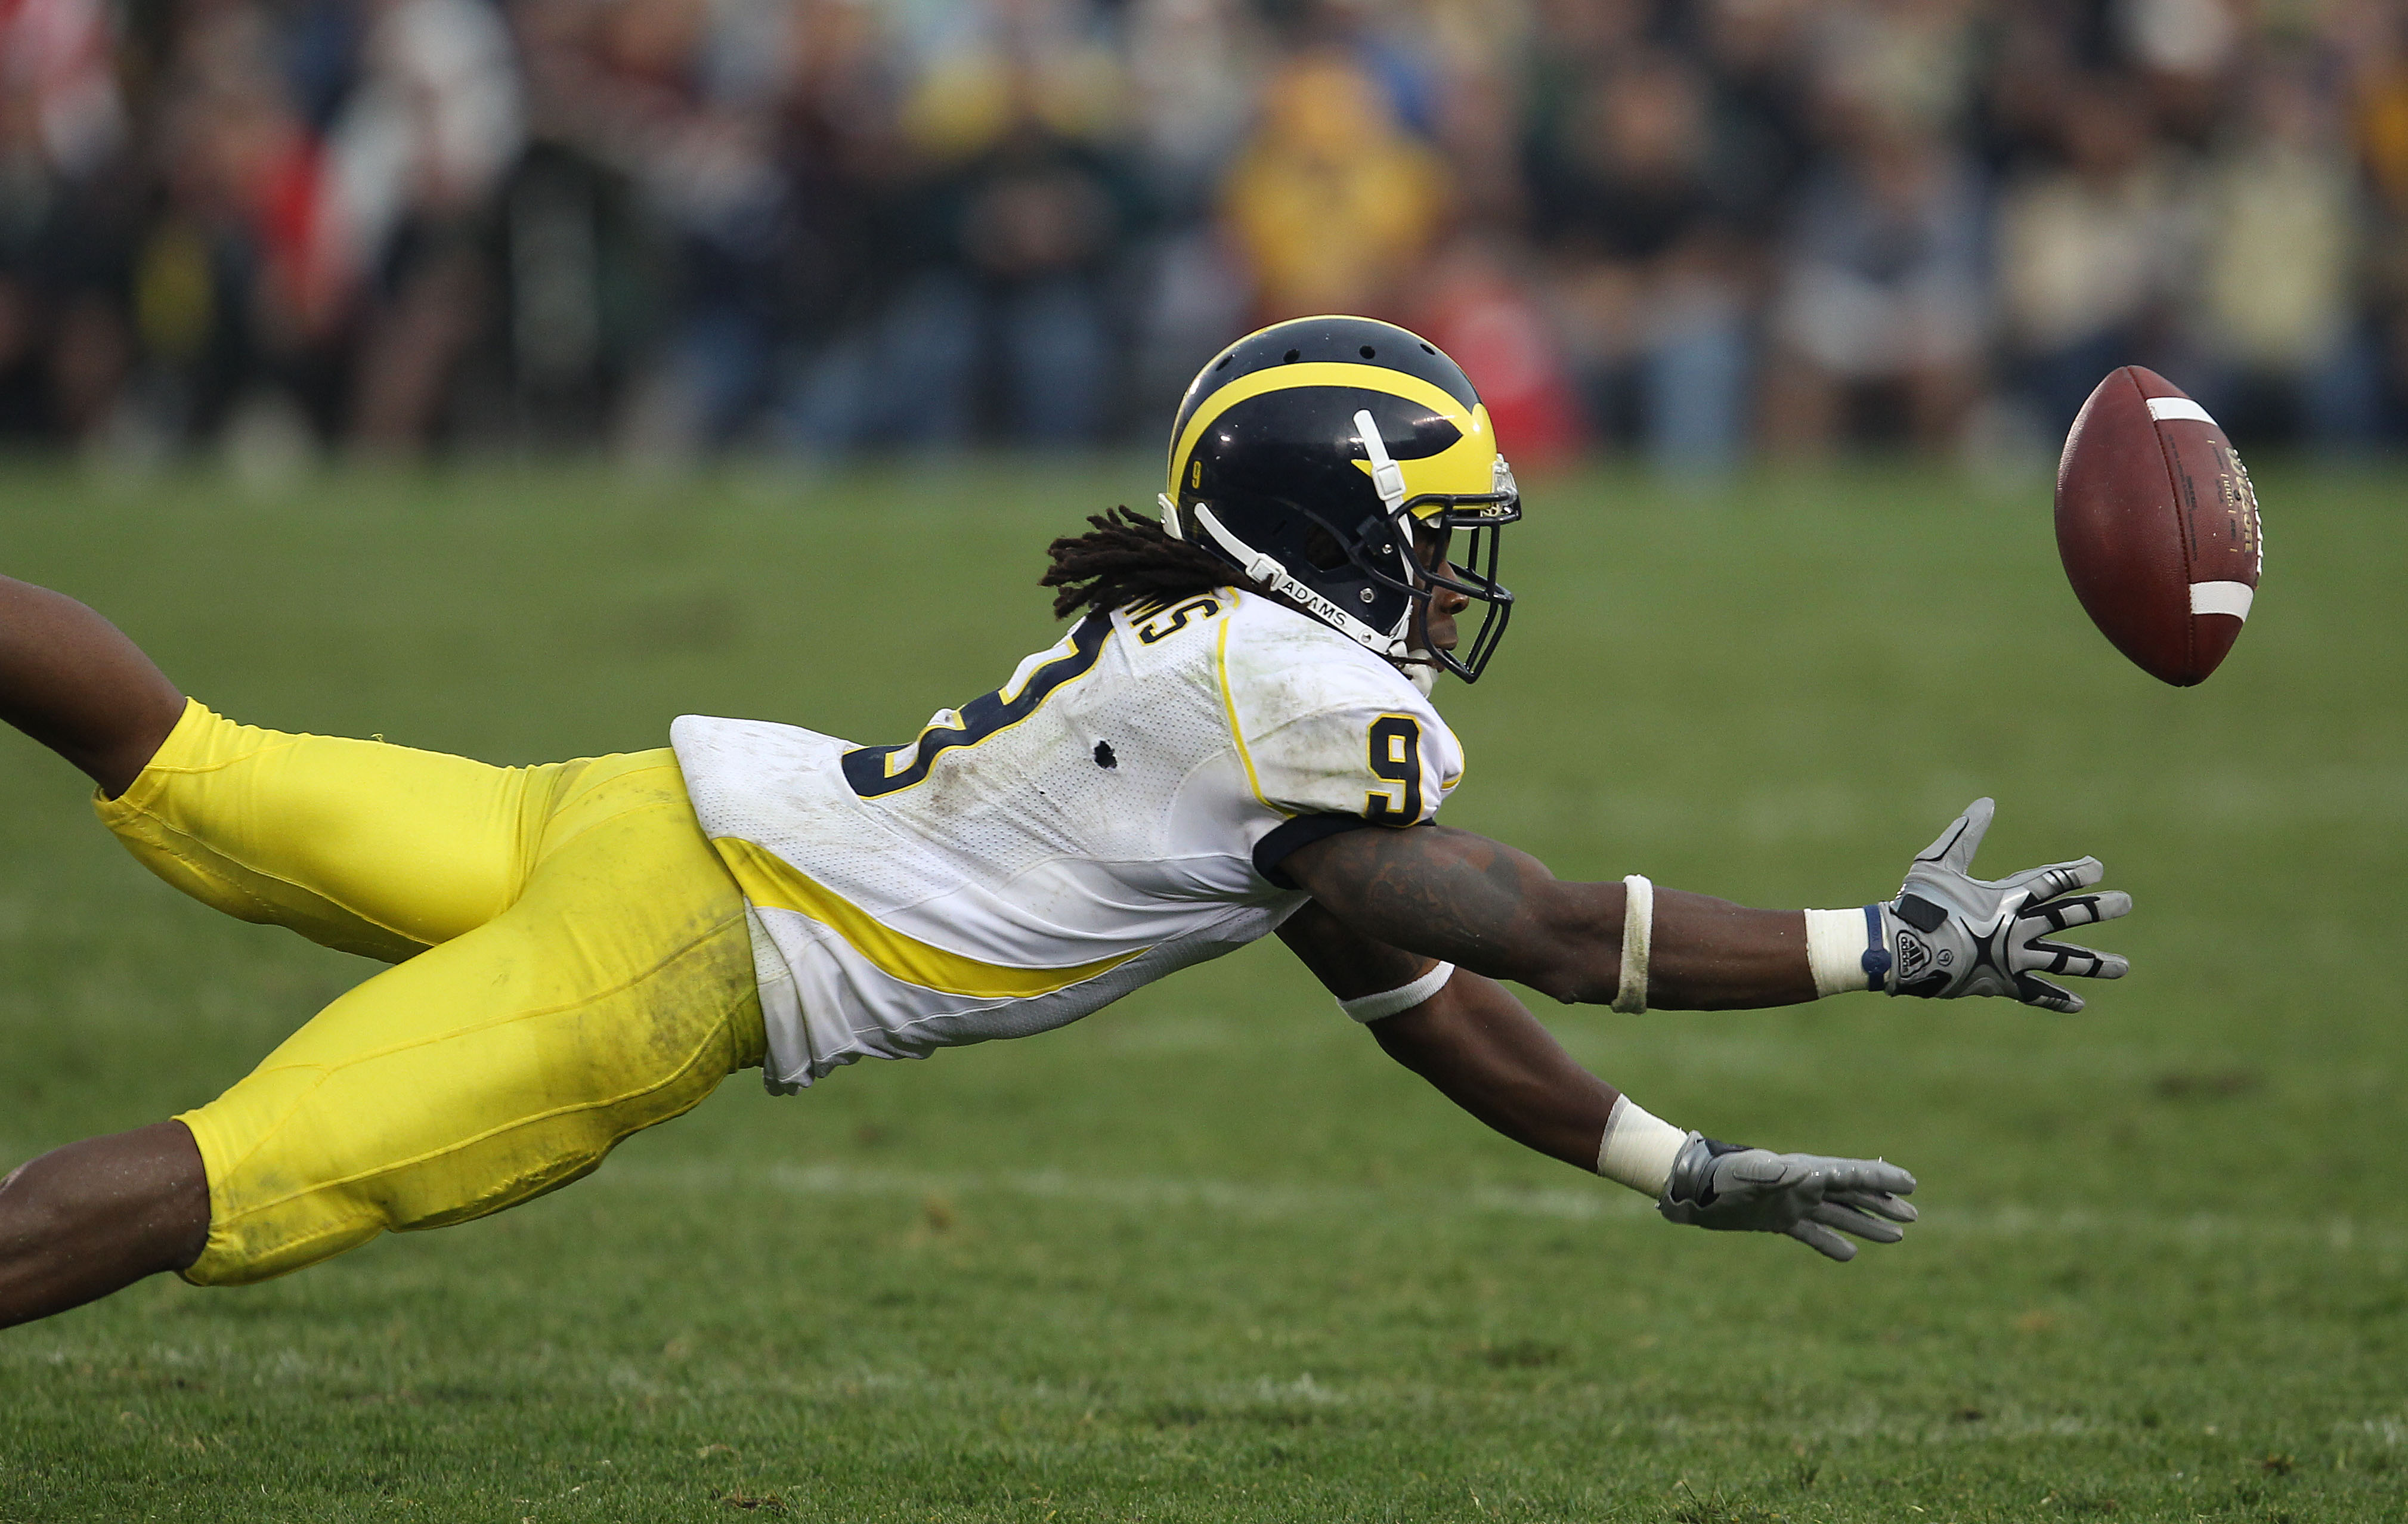 SOUTH BEND, IN - SEPTEMBER 11: Martavious Odoms #9 of the Michigan Wolverines misses a catch against the Notre Dame Fighting Irish at Notre Dame Stadium on September 11, 2010 in South Bend, Indiana. Michigan defeated Notre Dame 28-24. (Photo by Jonathan D